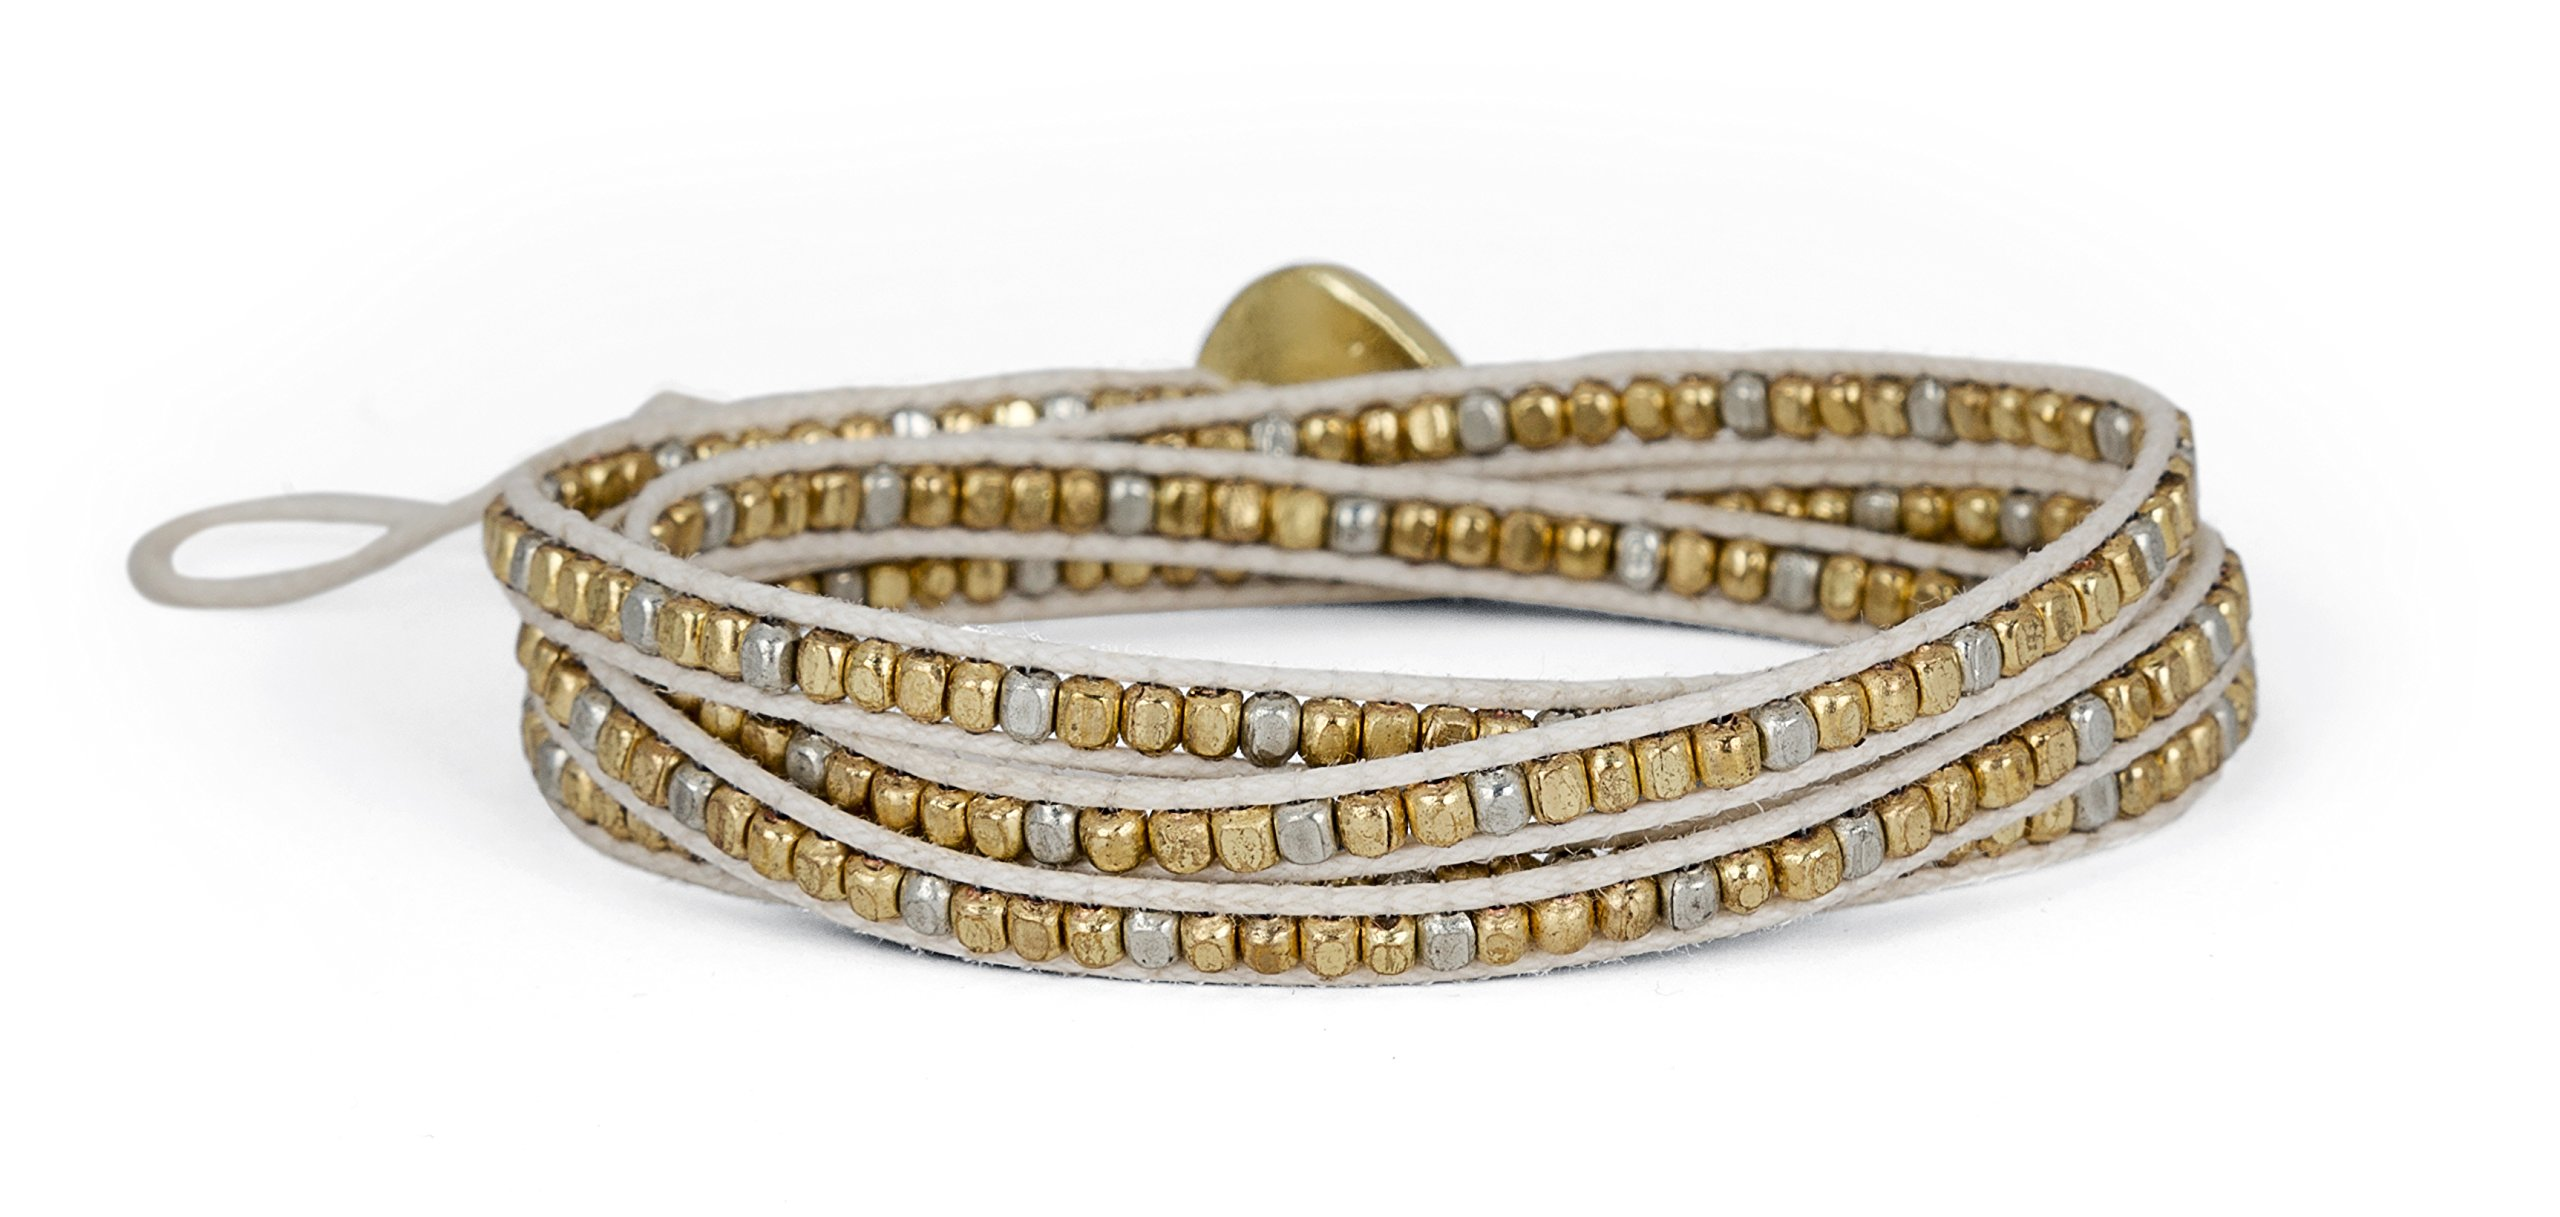 New! Handmade Boho 4 Wrap Bracelet Gold and Silver and Creme for Women | SPUNKYsoul Collection